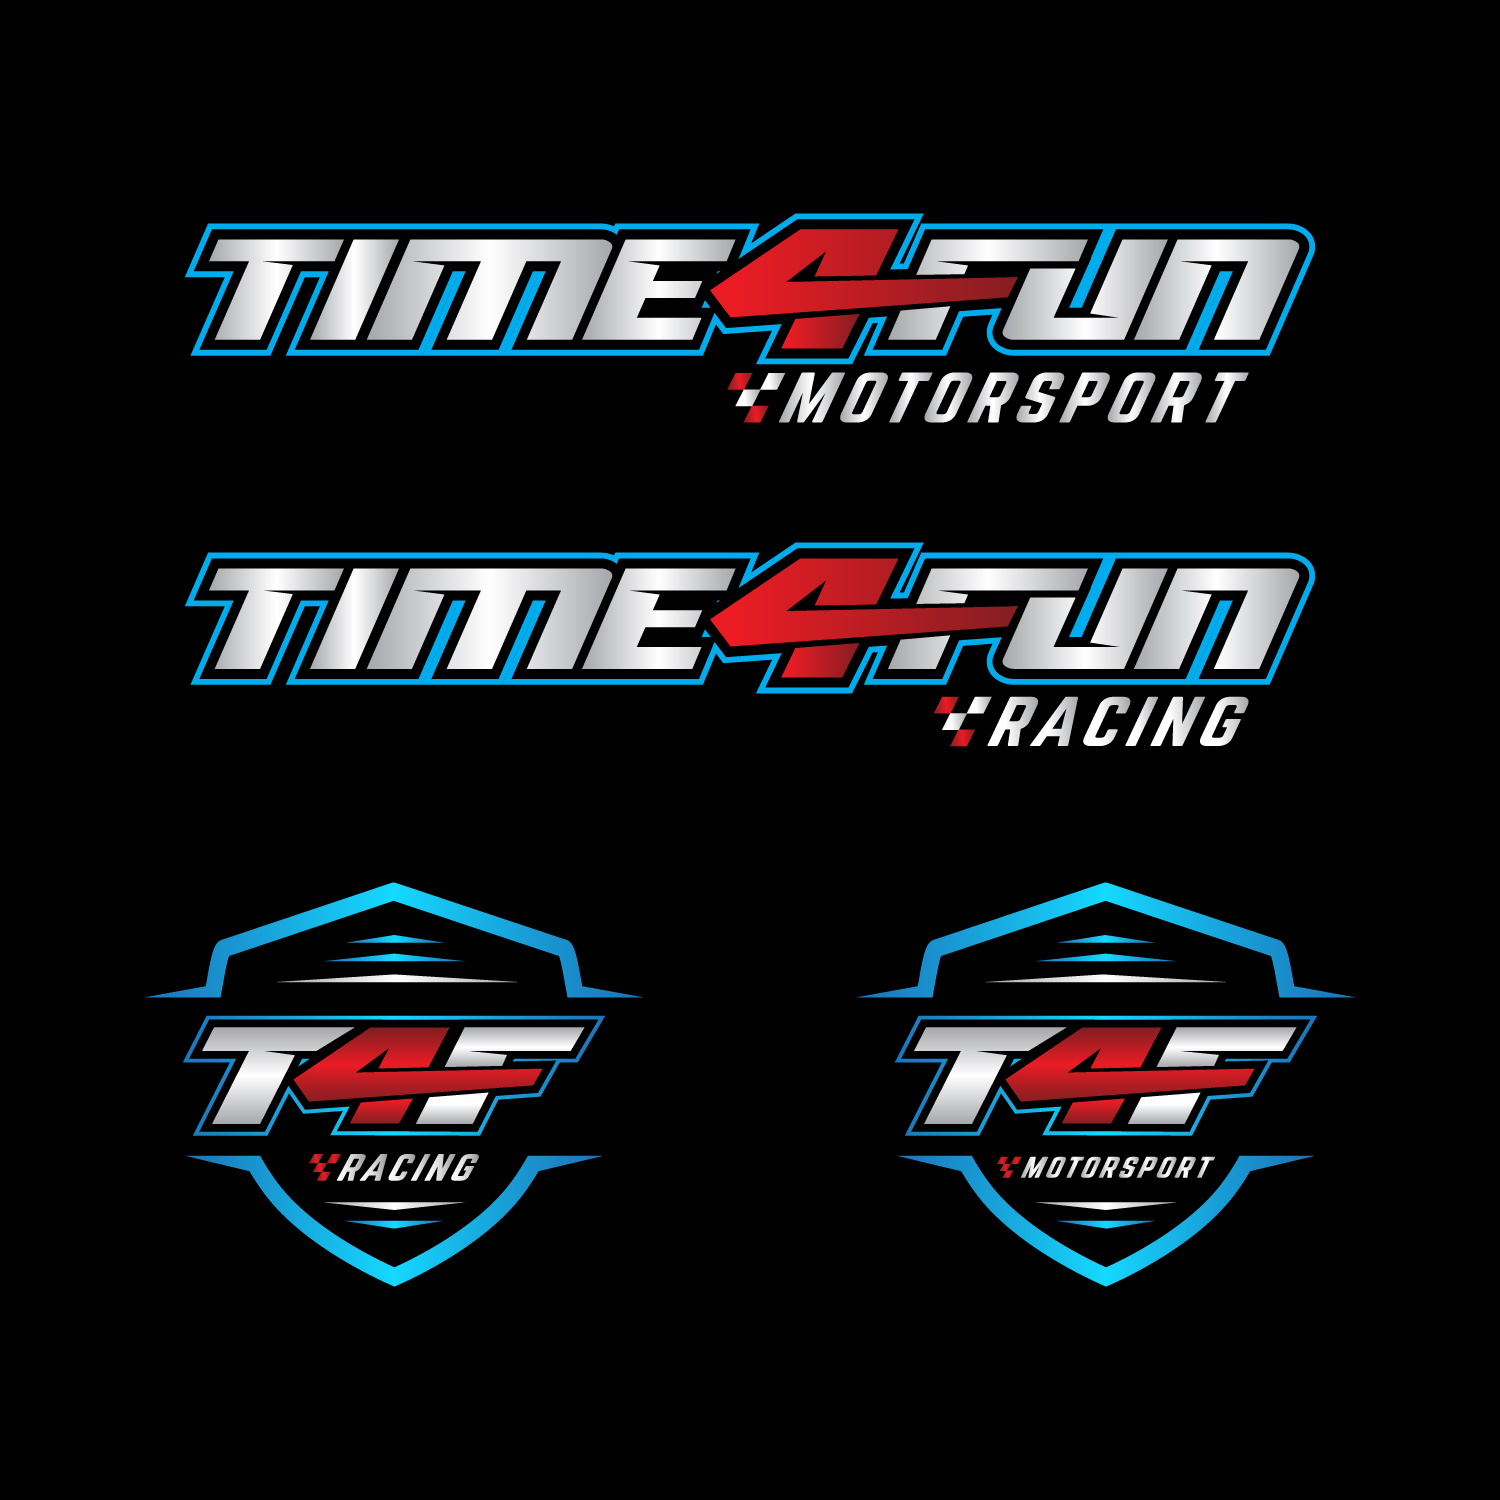 New Motor Sports Racing Logo For Off Road Comapny 22 Logo Designs For T4f Racing And T4f Motorsports